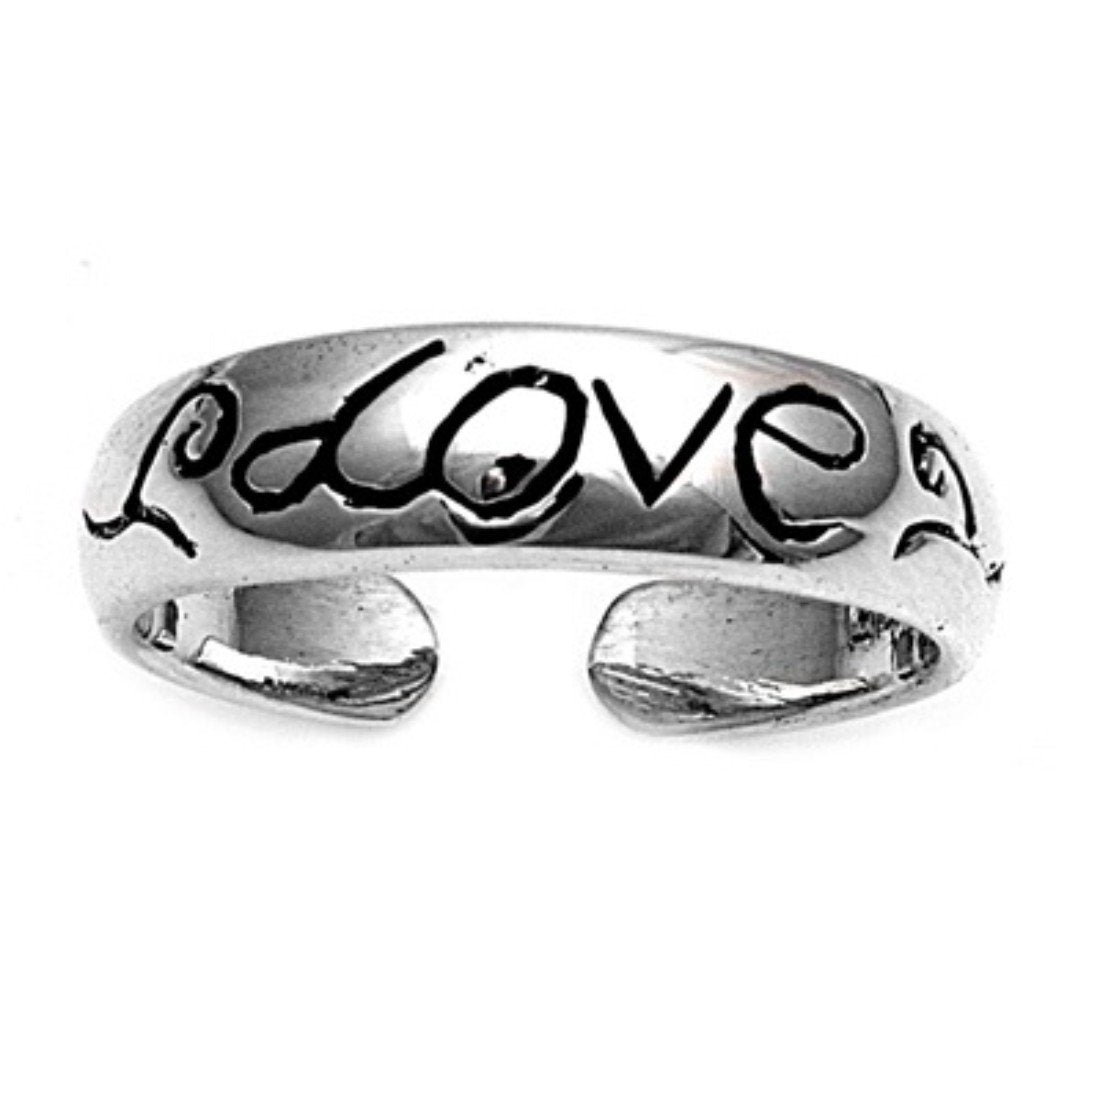 Love Adjustable Silver Toe Ring Band 925 Sterling Silver (5mm)